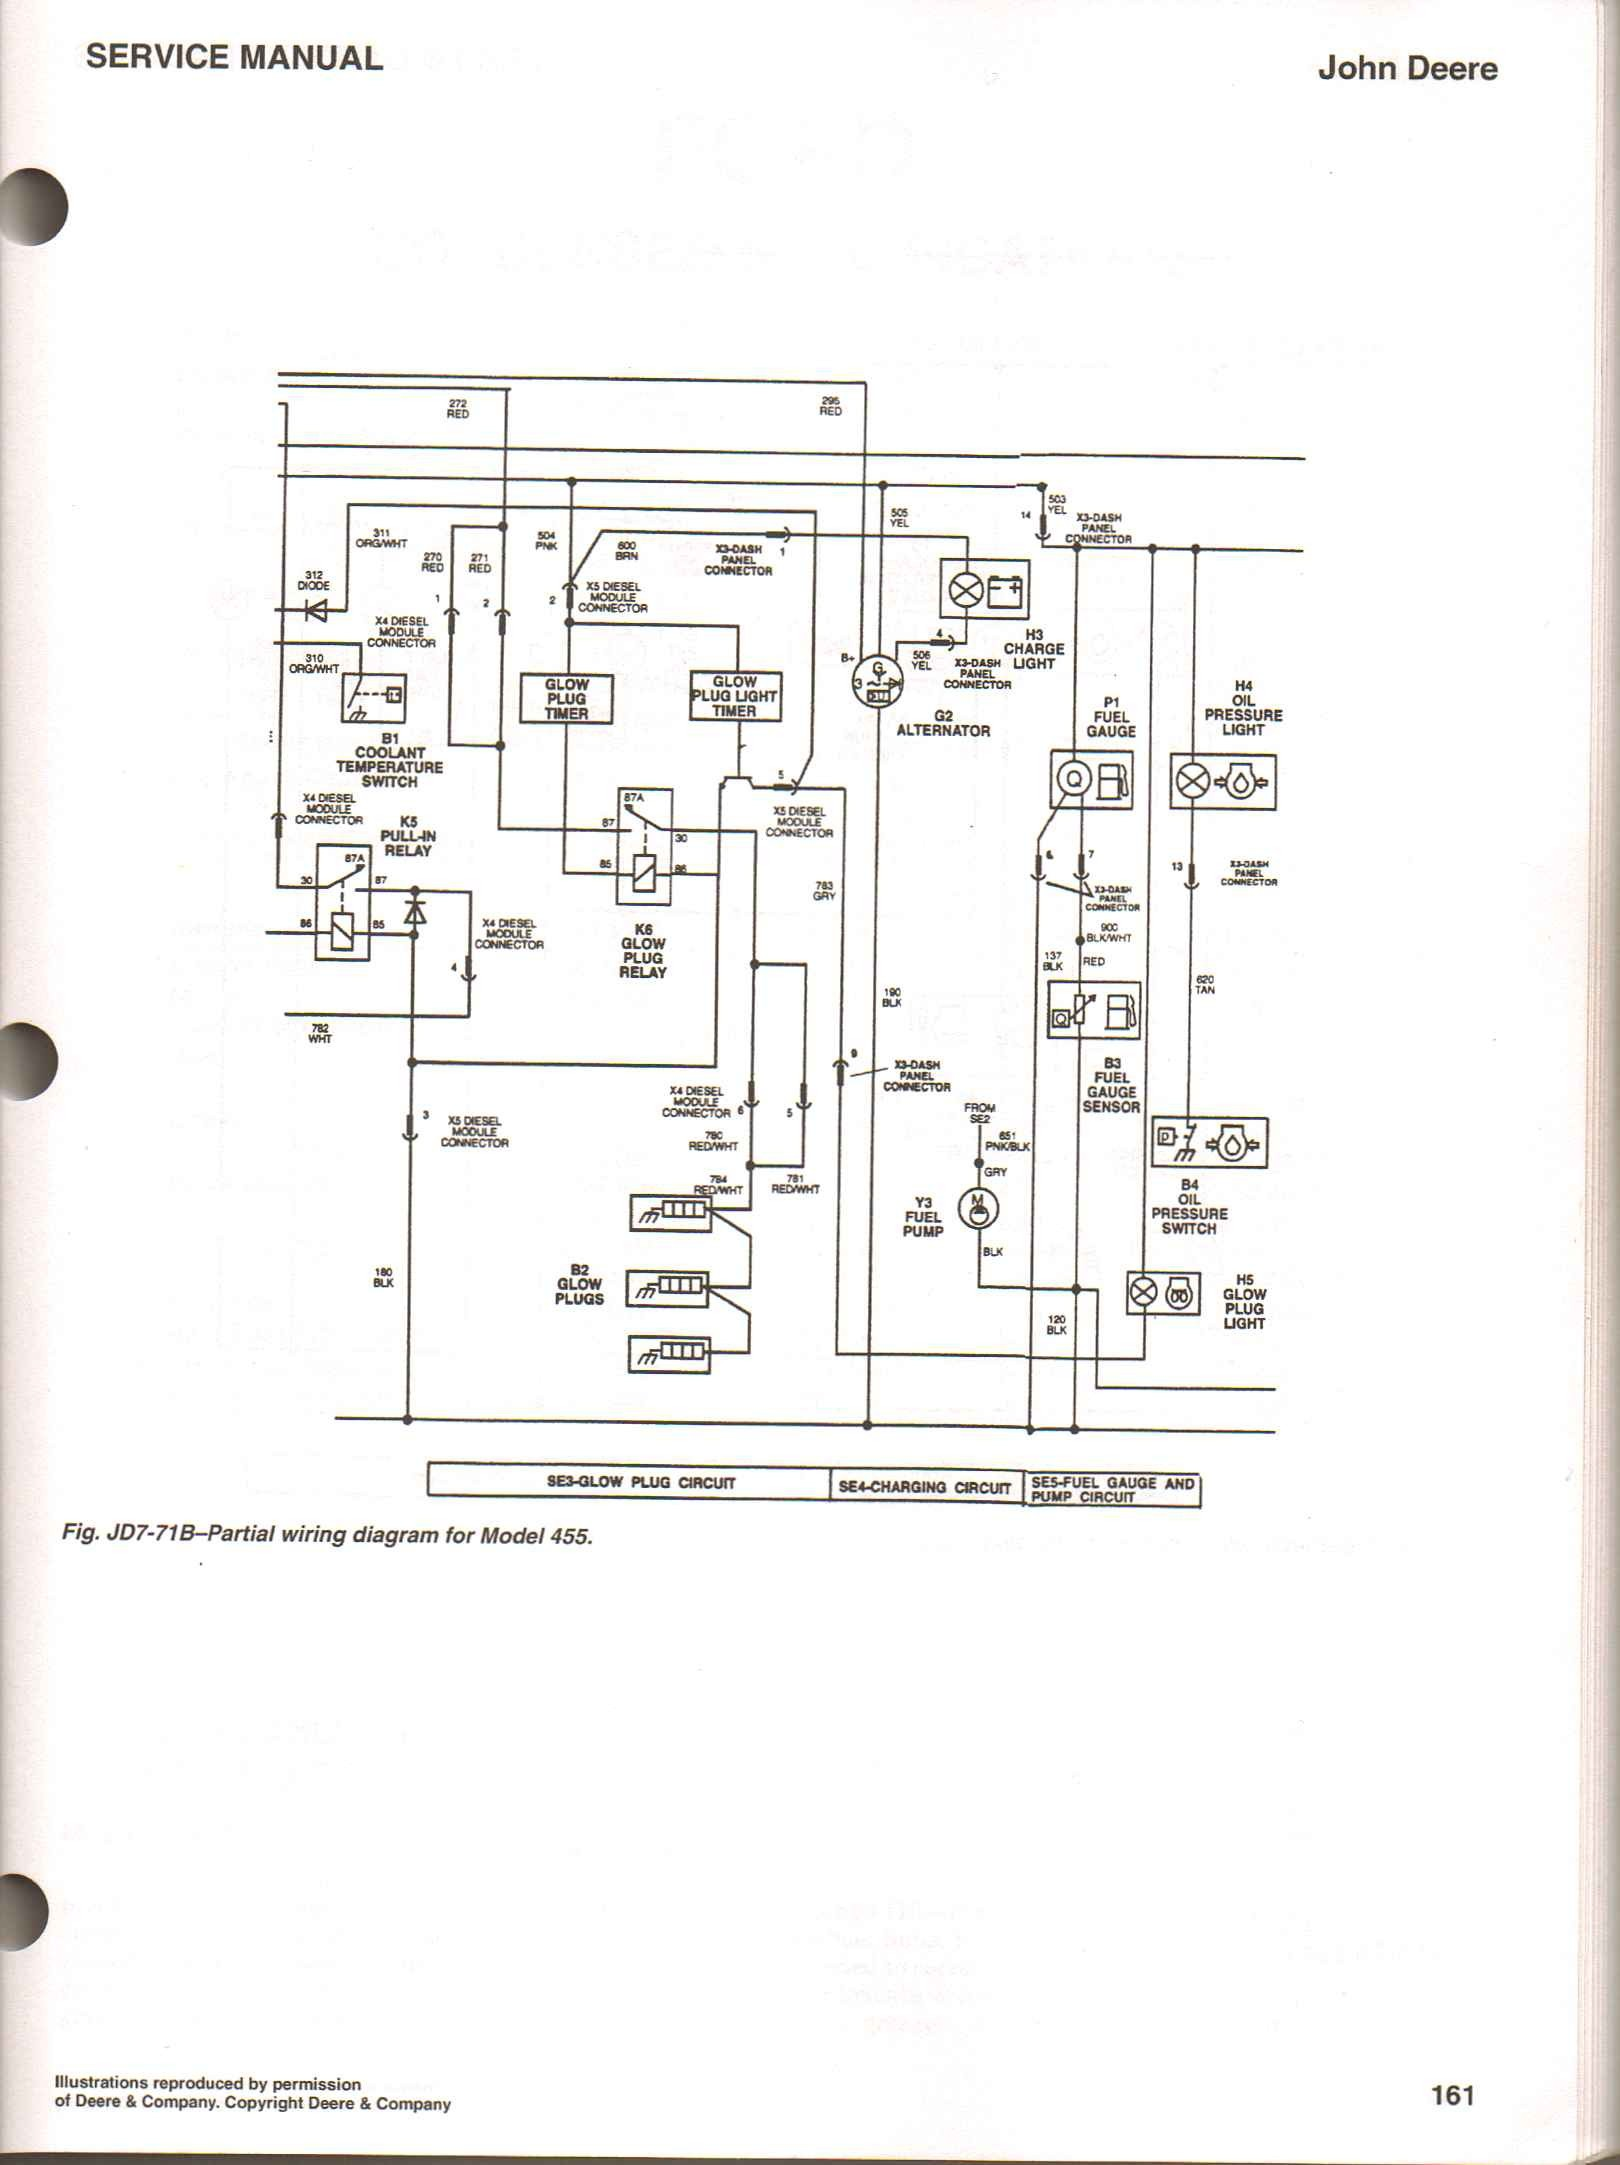 John Deere 1435 Wiring Diagram from i2.wp.com